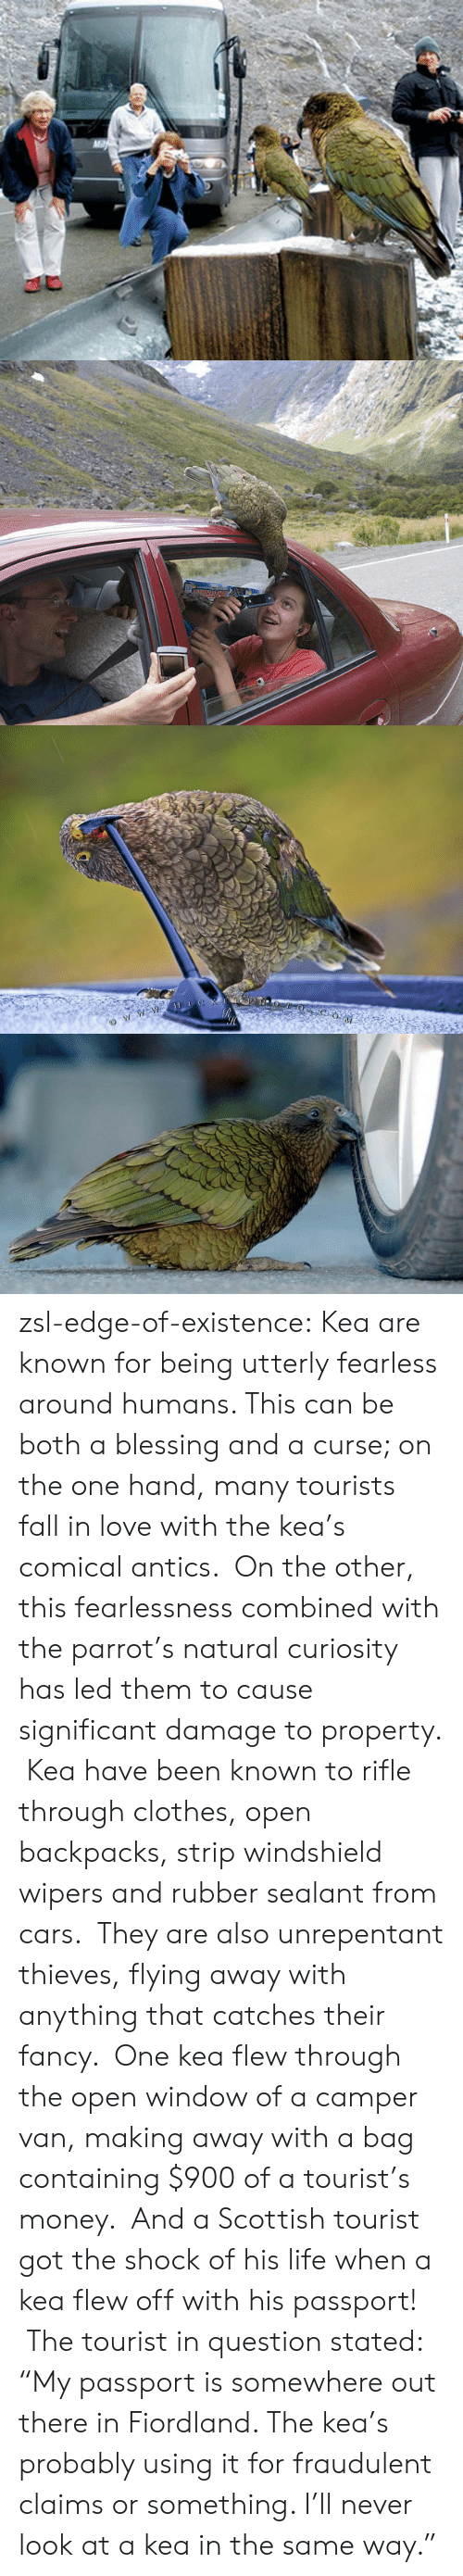 "Camper: zsl-edge-of-existence:  Kea are known for being utterly fearless around humans. This can be both a blessing and a curse; on the one hand, many tourists fall in love with the kea's comical antics.  On the other, this fearlessness combined with the parrot's natural curiosity has led them to cause significant damage to property.  Kea have been known to rifle through clothes, open backpacks, strip windshield wipers and rubber sealant from cars.  They are also unrepentant thieves, flying away with anything that catches their fancy.  One kea flew through the open window of a camper van, making away with a bag containing $900 of a tourist's money.  And a Scottish tourist got the shock of his life when a kea flew off with his passport!  The tourist in question stated: ""My passport is somewhere out there in Fiordland. The kea's probably using it for fraudulent claims or something. I'll never look at a kea in the same way."""